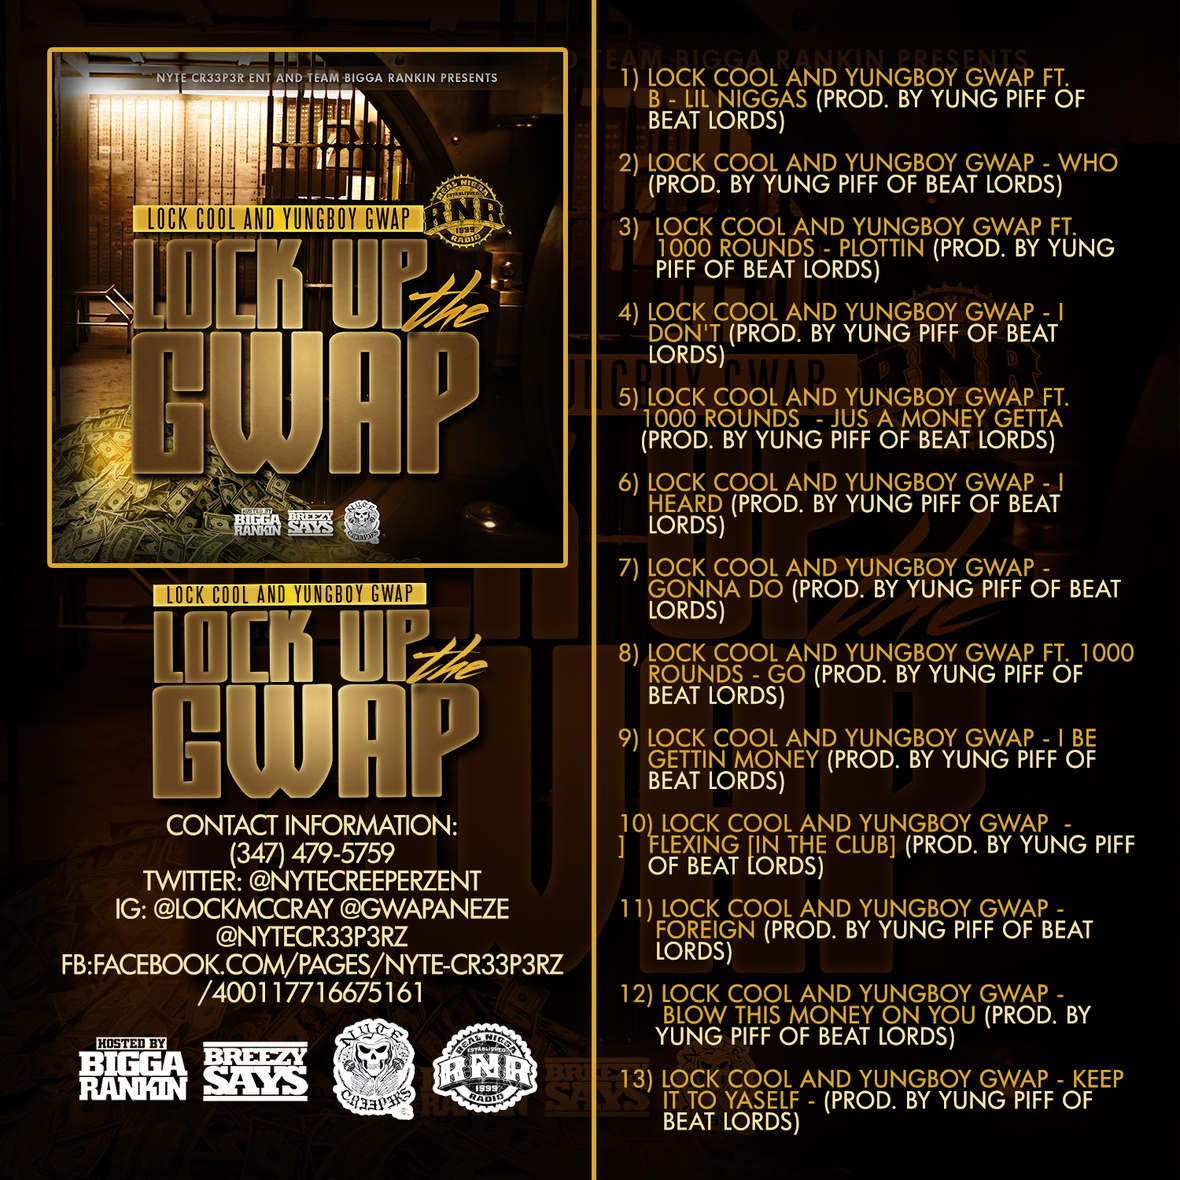 LOCK COOL and YUNGBOY GWAP - LOCK UP THE GWAP WRNR - BACK 1